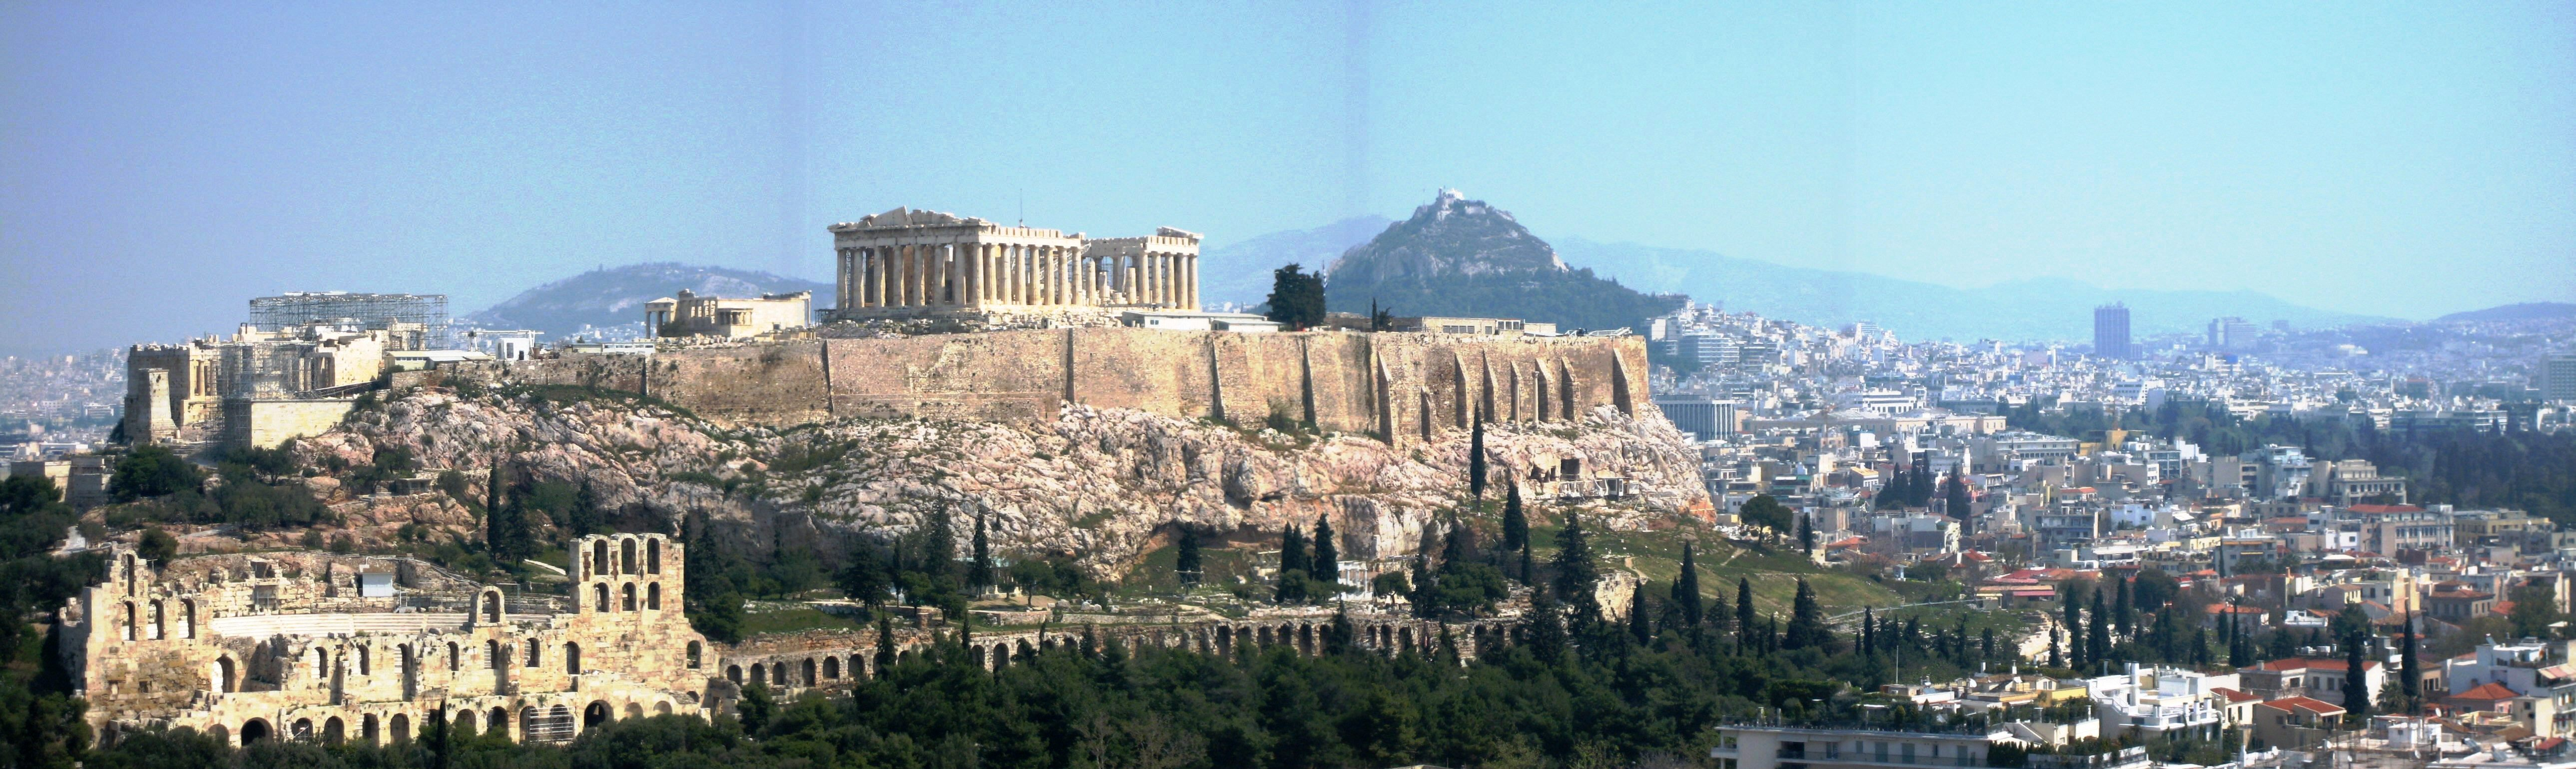 http://upload.wikimedia.org/wikipedia/commons/4/4d/Acropolis_from_a_top_Philopappos_Hill